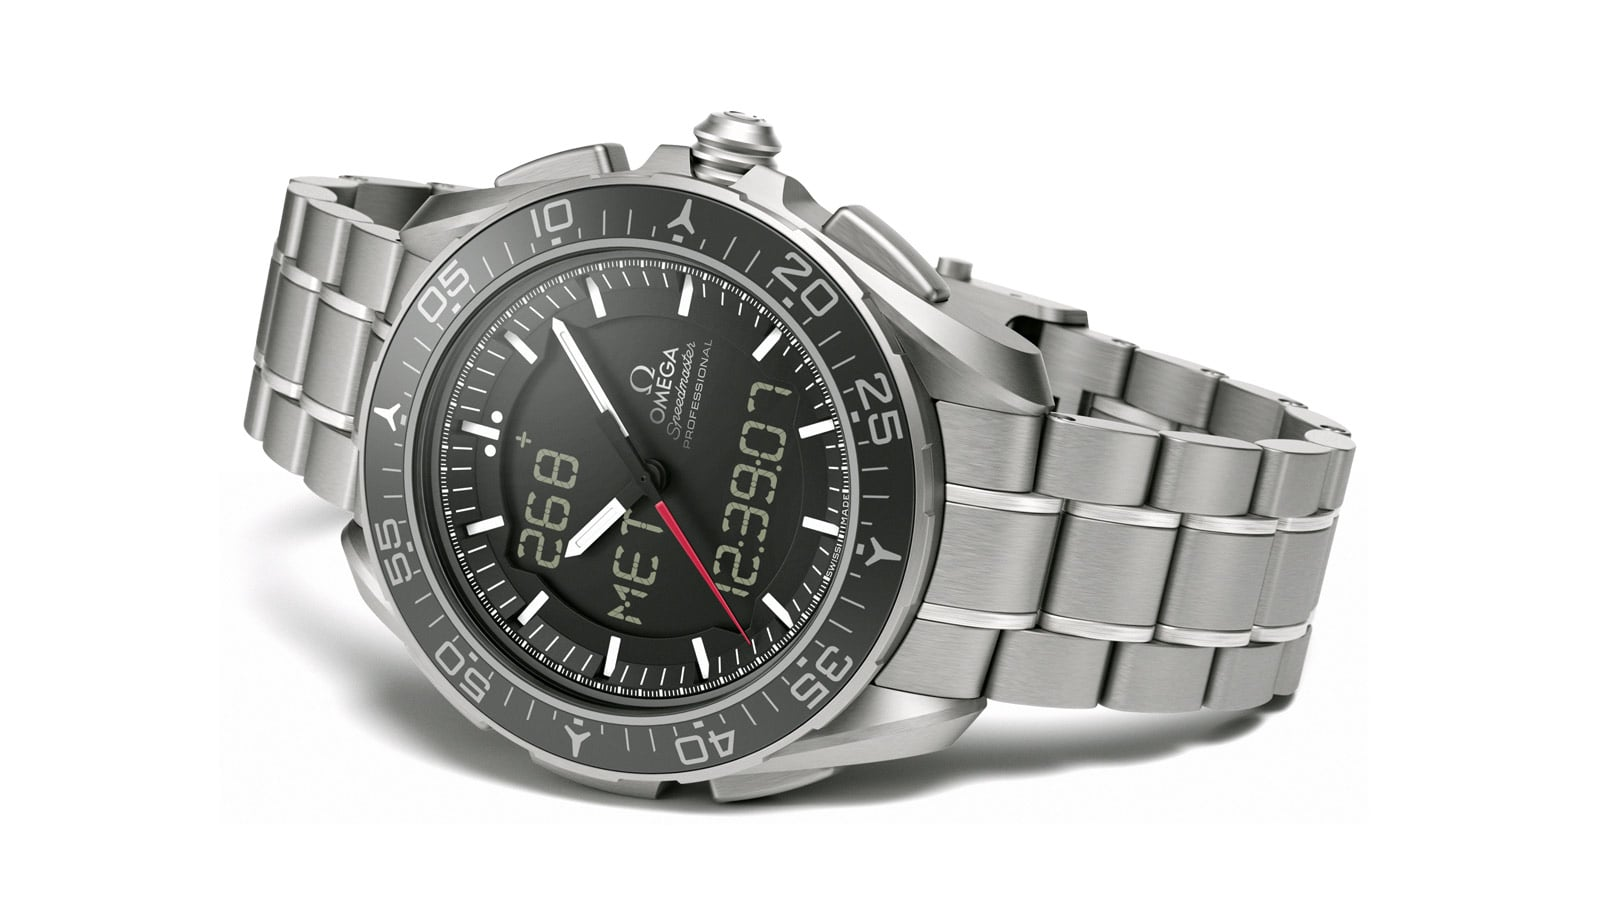 THE OMEGA SPEEDMASTER SKYWALKER X-33